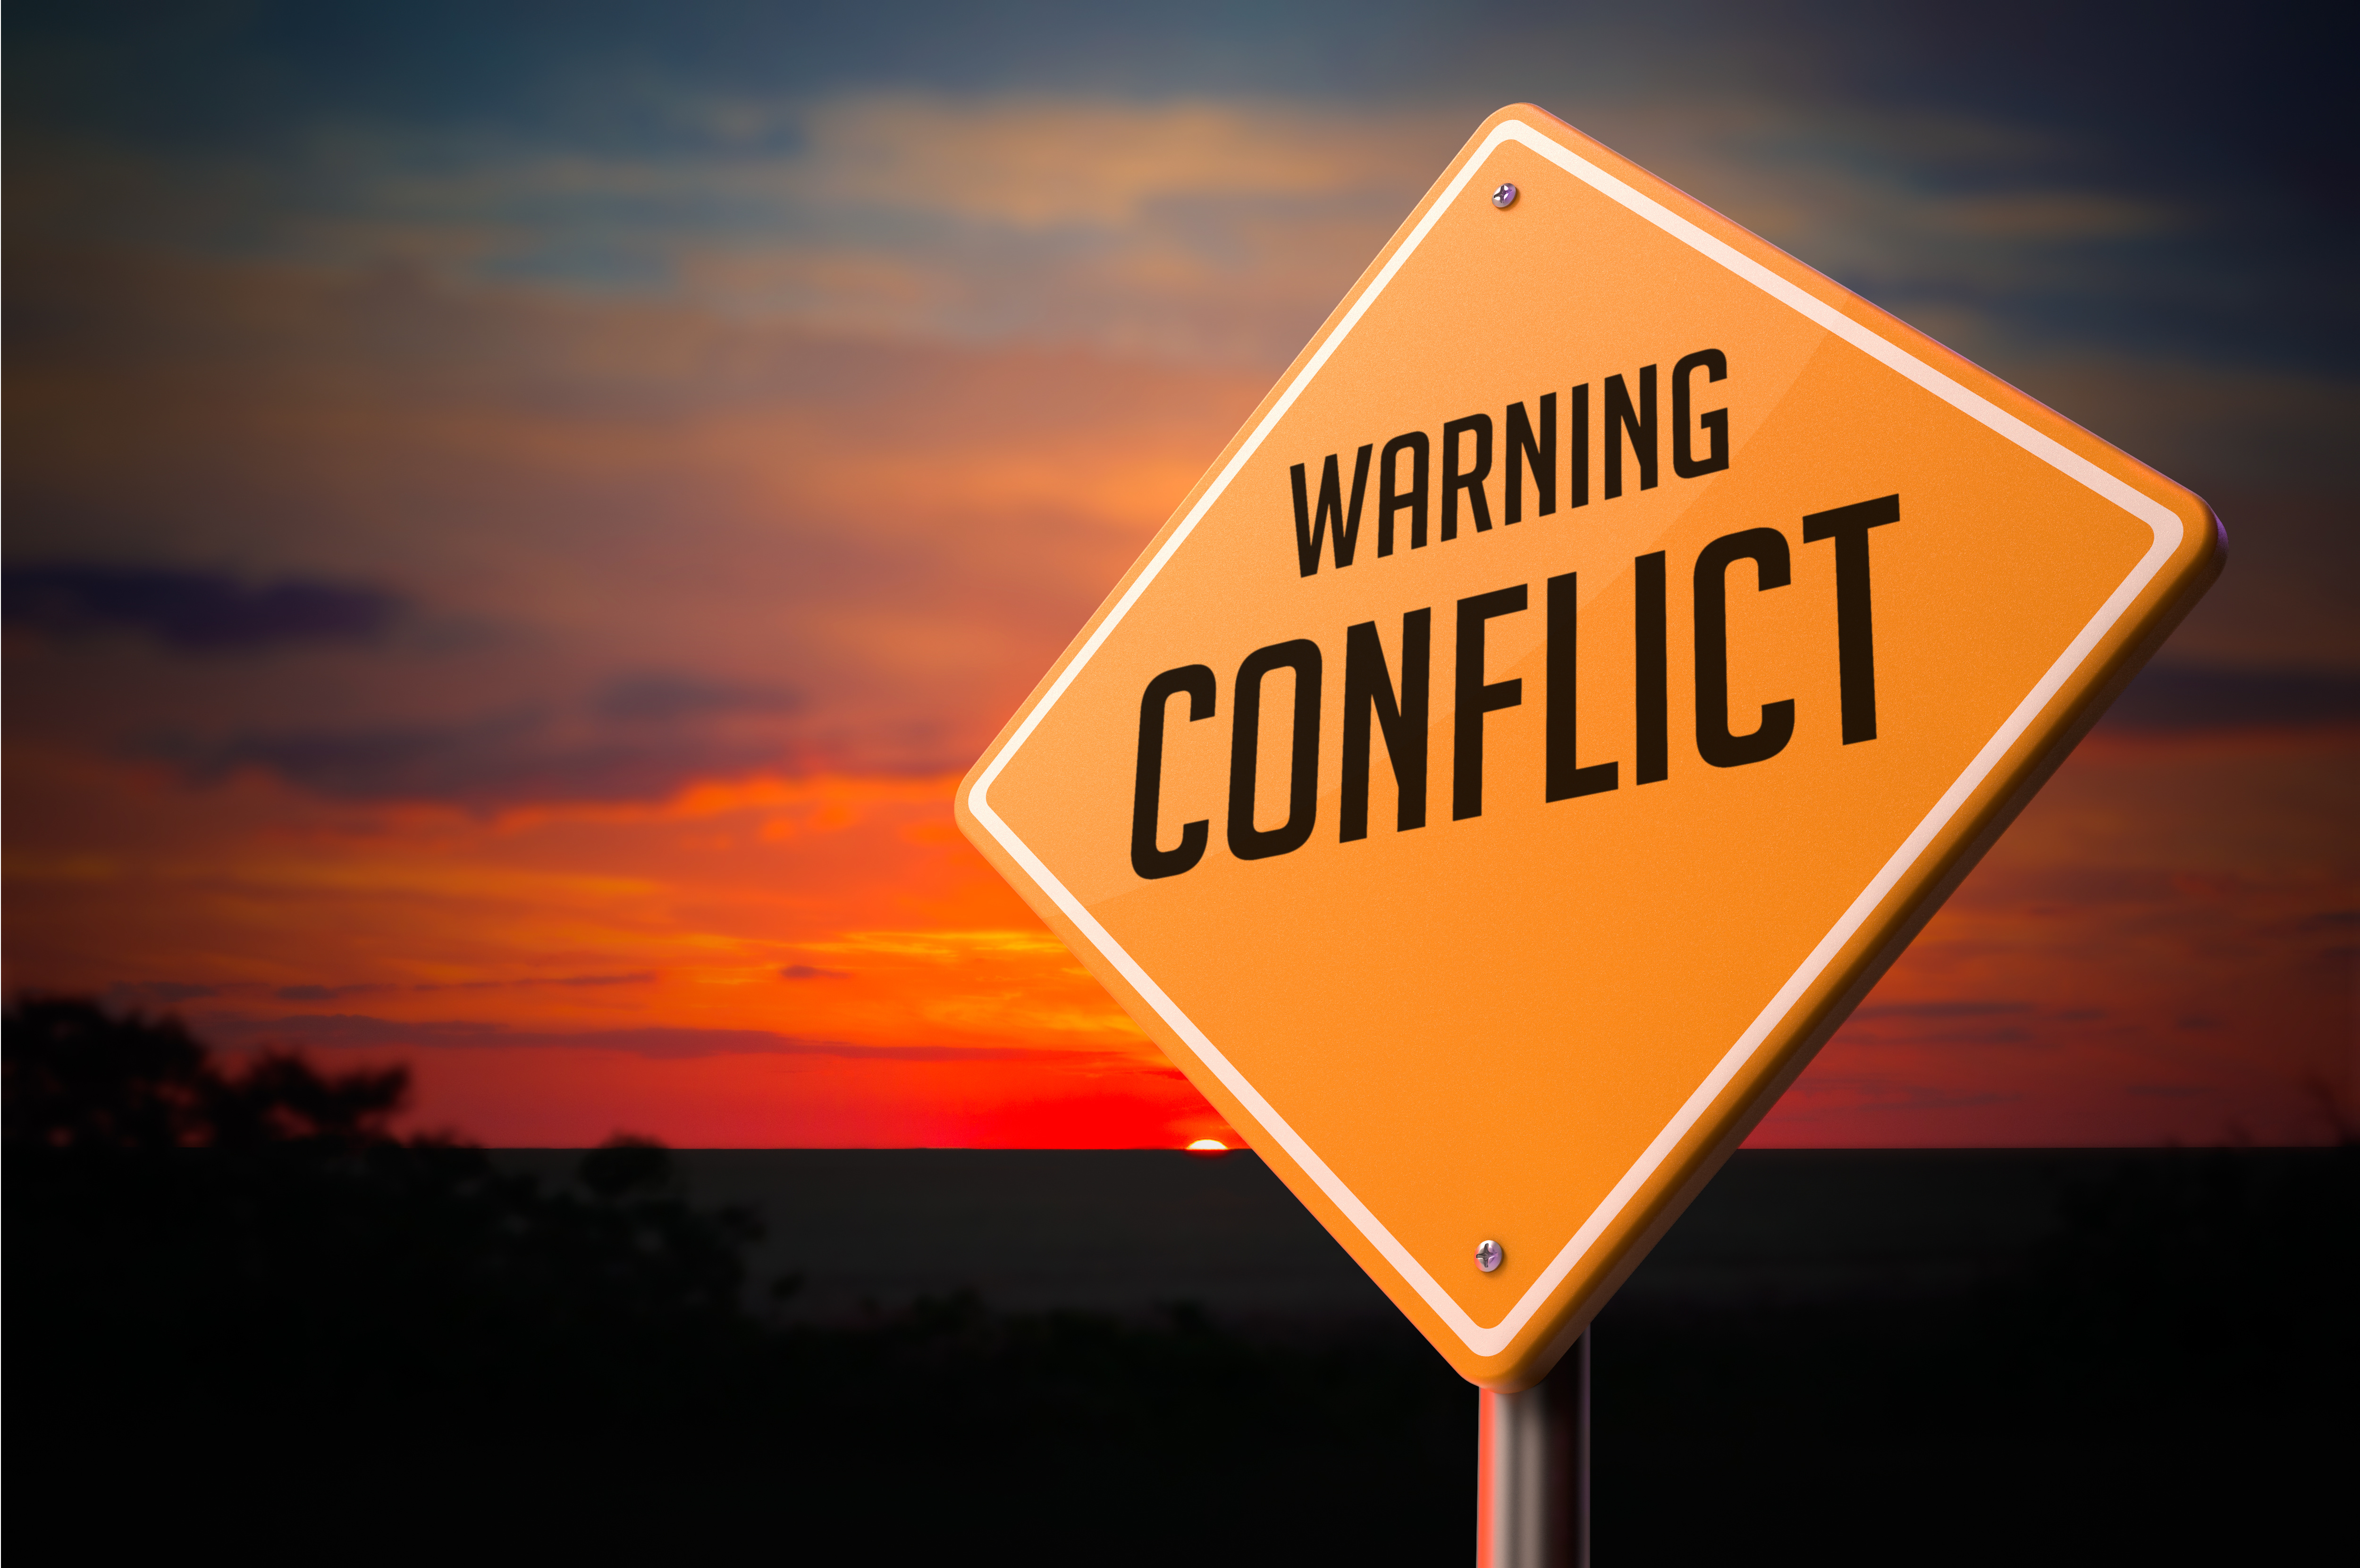 Conflict on Warning Road Sign